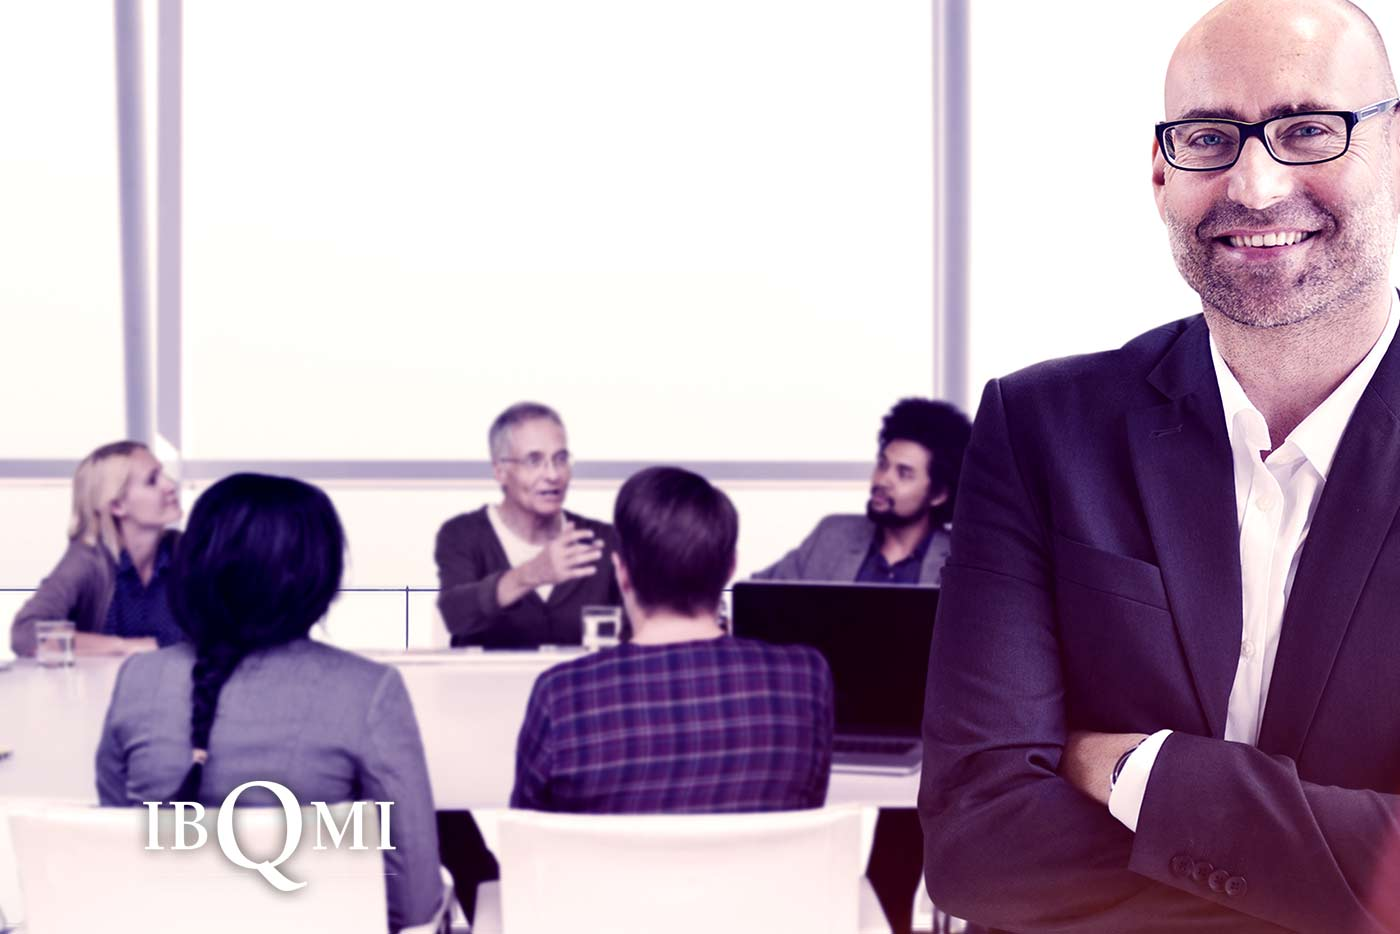 5 effective ways to gain credibility as a leader